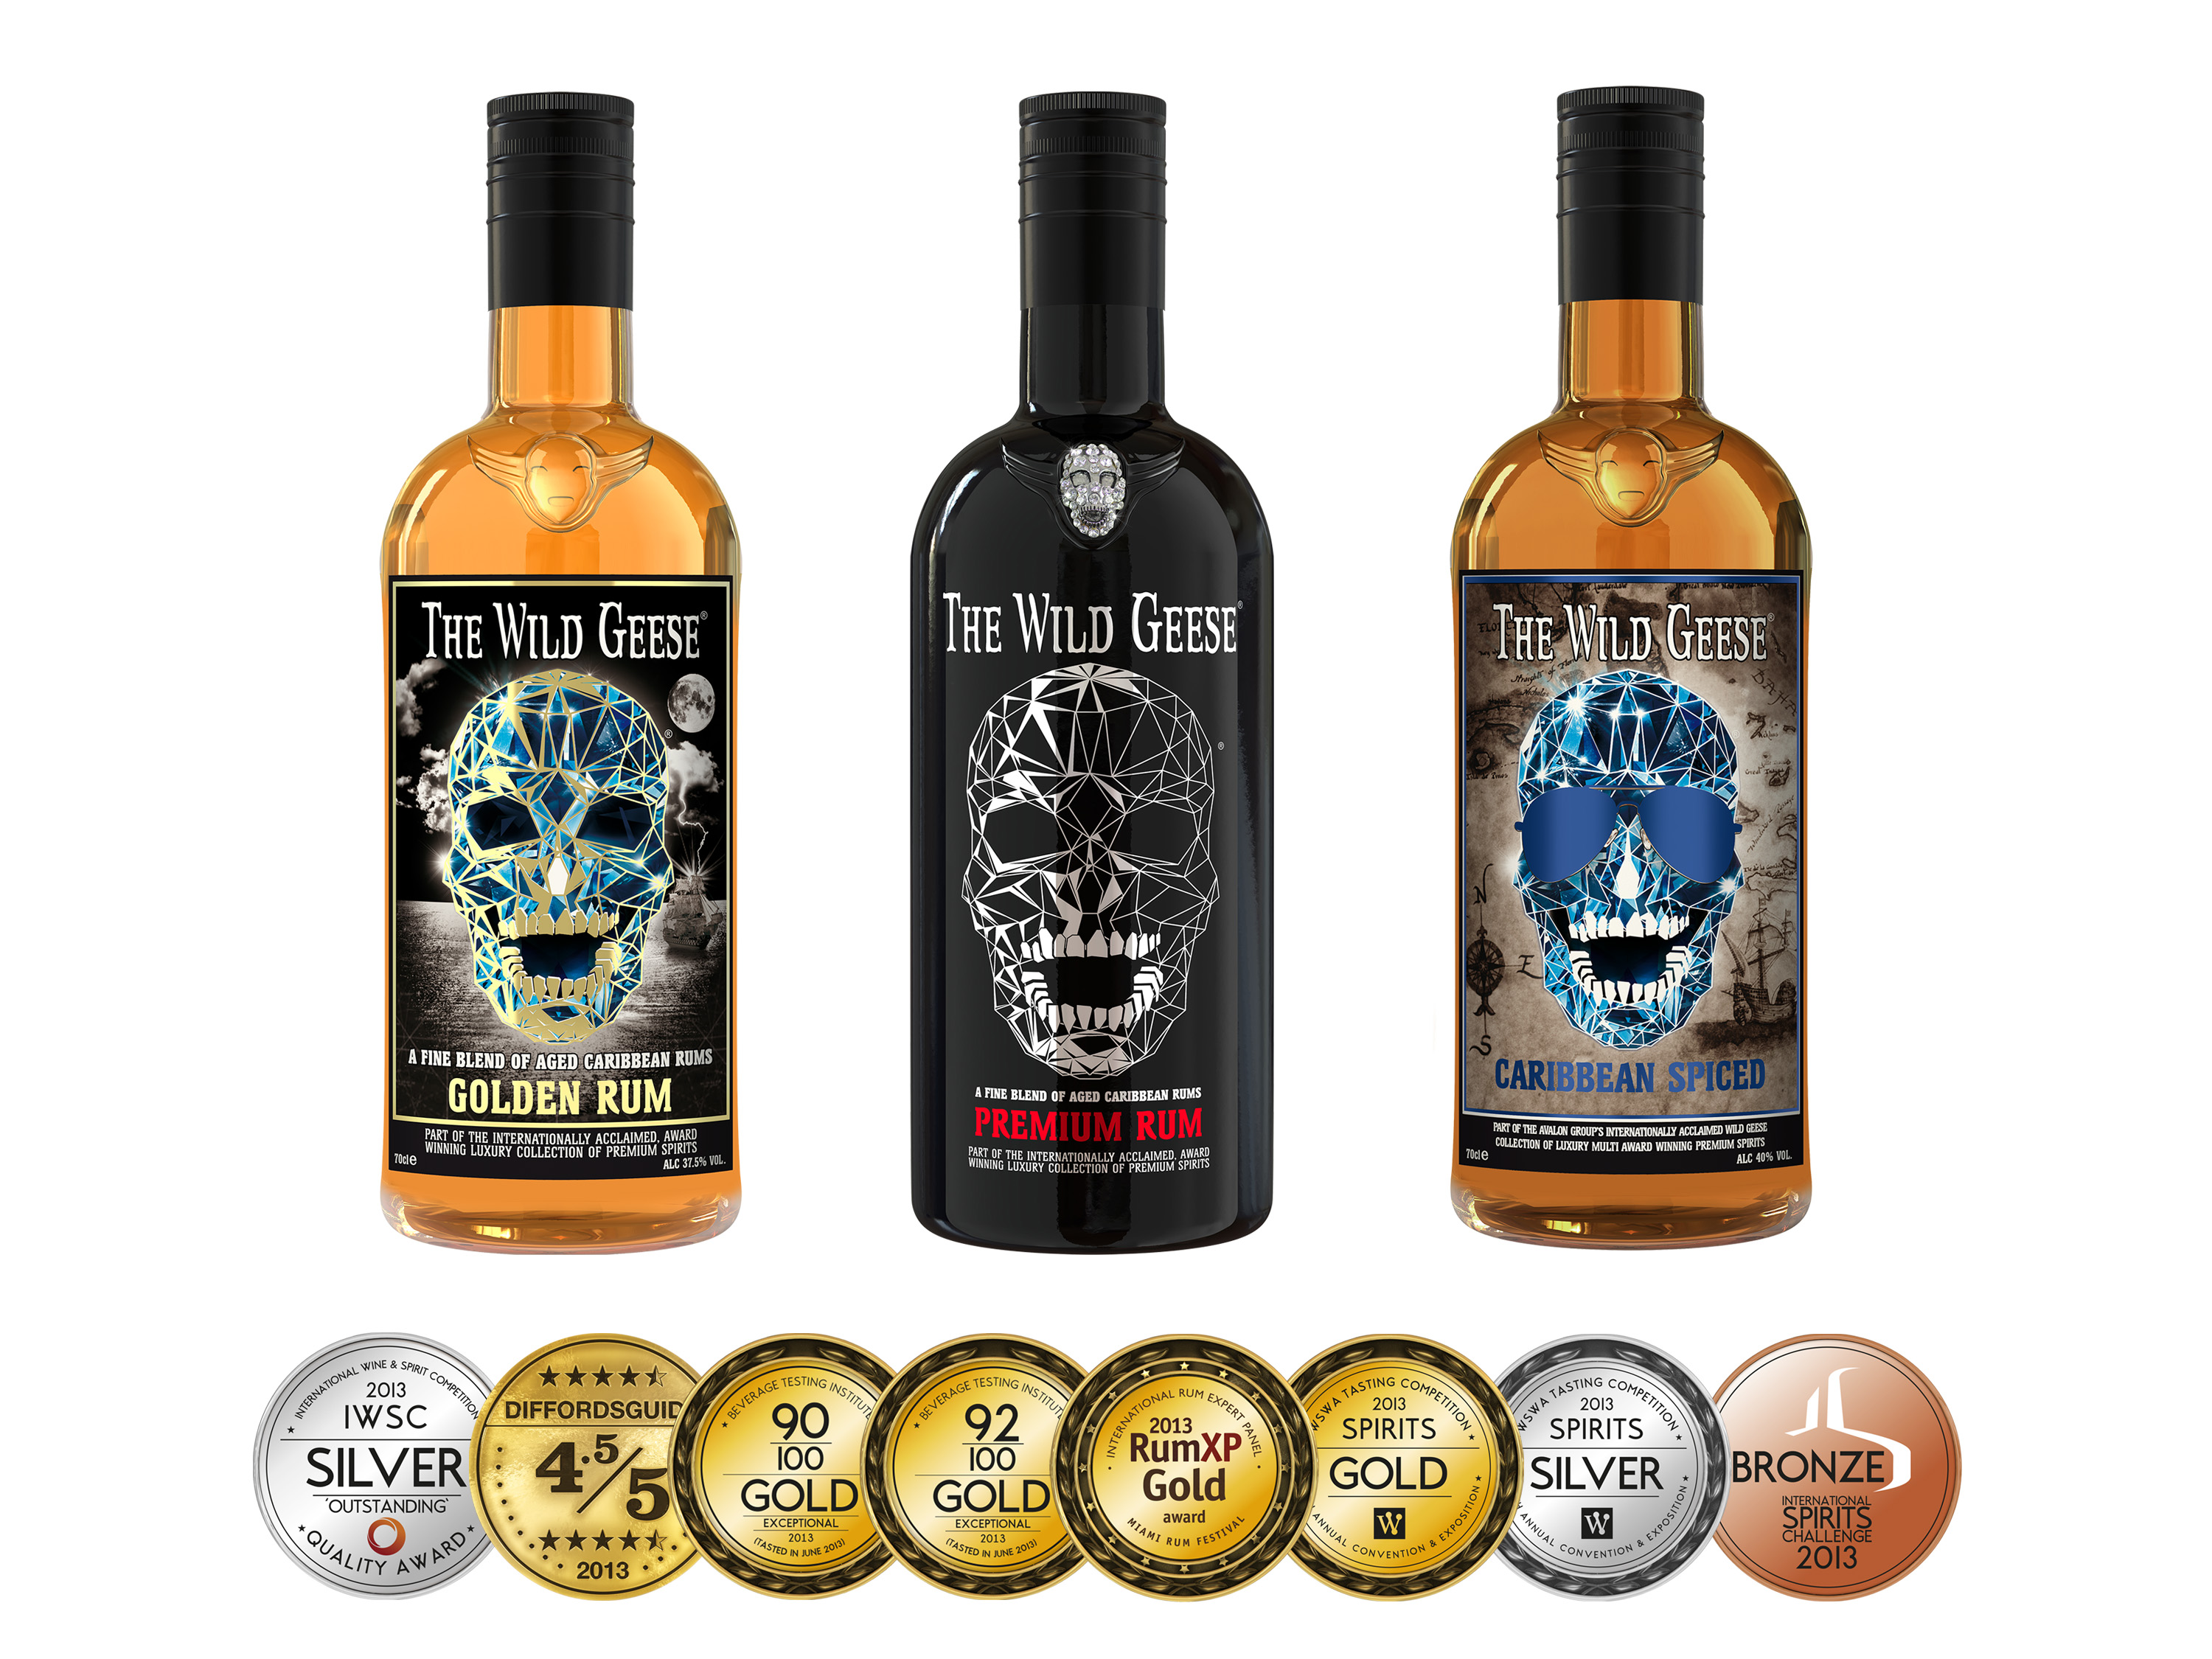 Caribbean Rum: THE WILD GEESE® Unleash A New Collection Of Multi Award